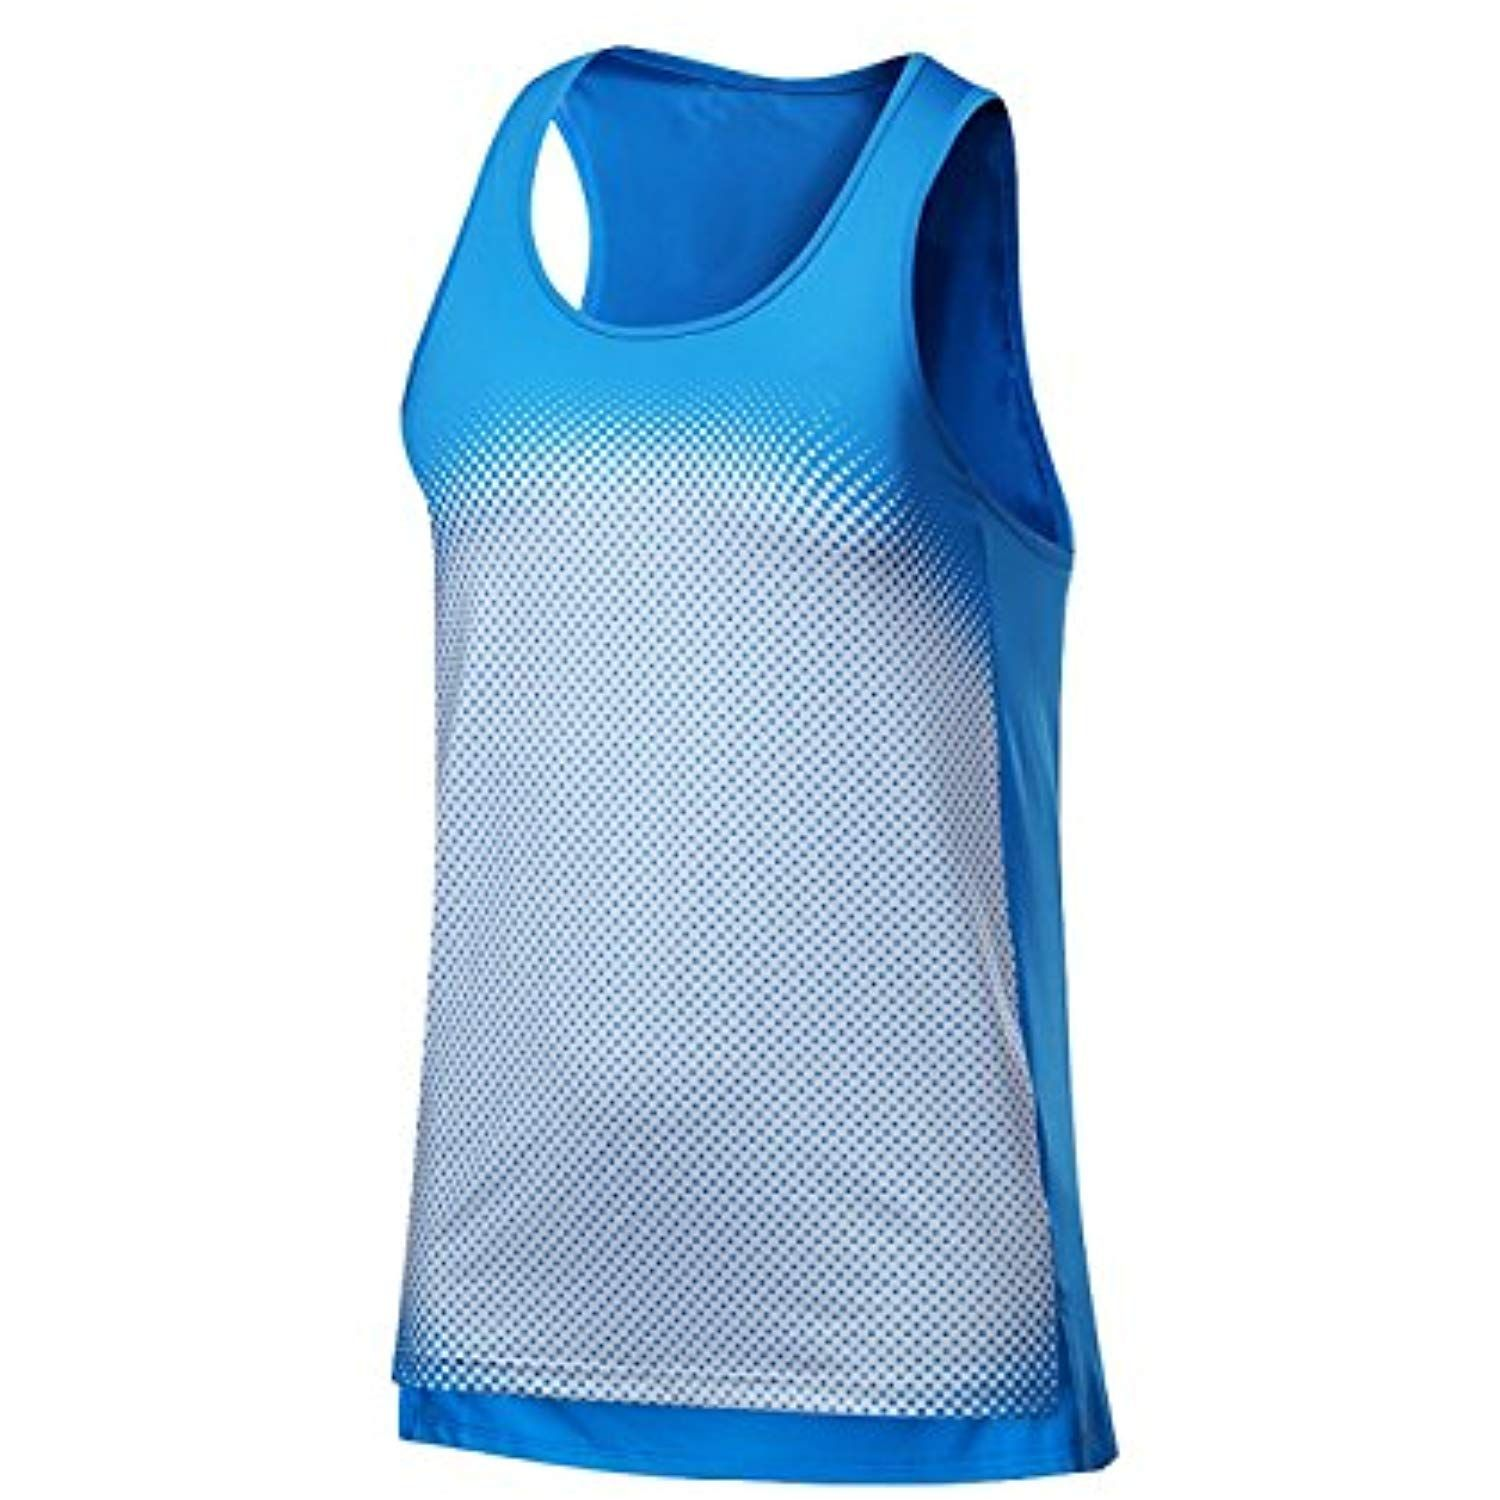 Racerback Yoga Shirts Tie Back Activewear Athletic Racerback Top Shirts for Women TERODACO Open Back Workout Tank Tops